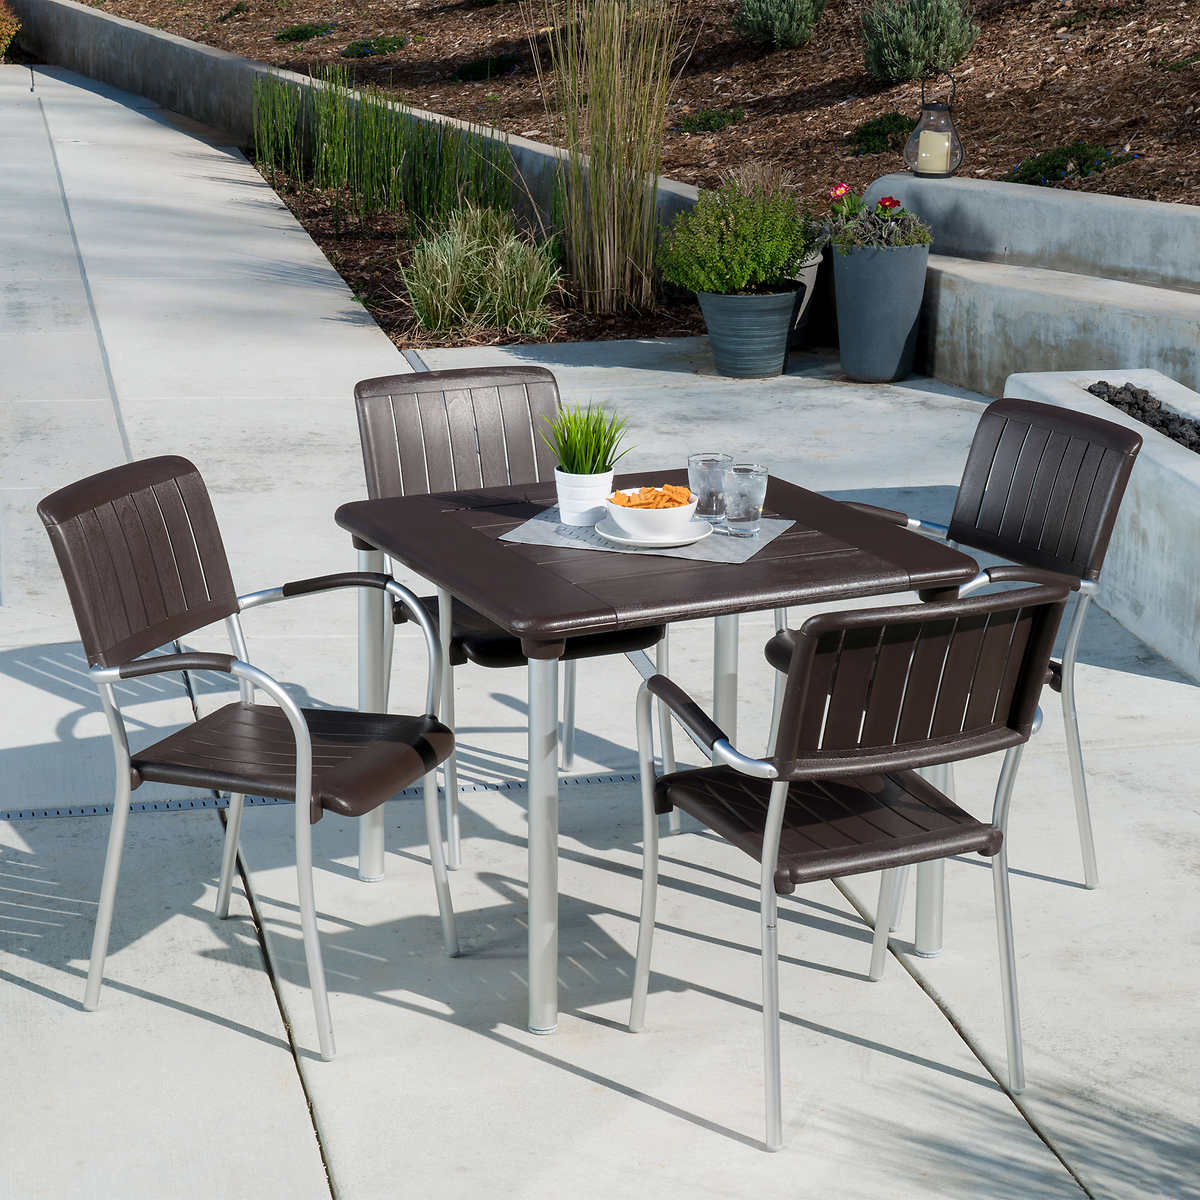 Commercial Outdoor Dining Furniture commercial patio furniture | costco